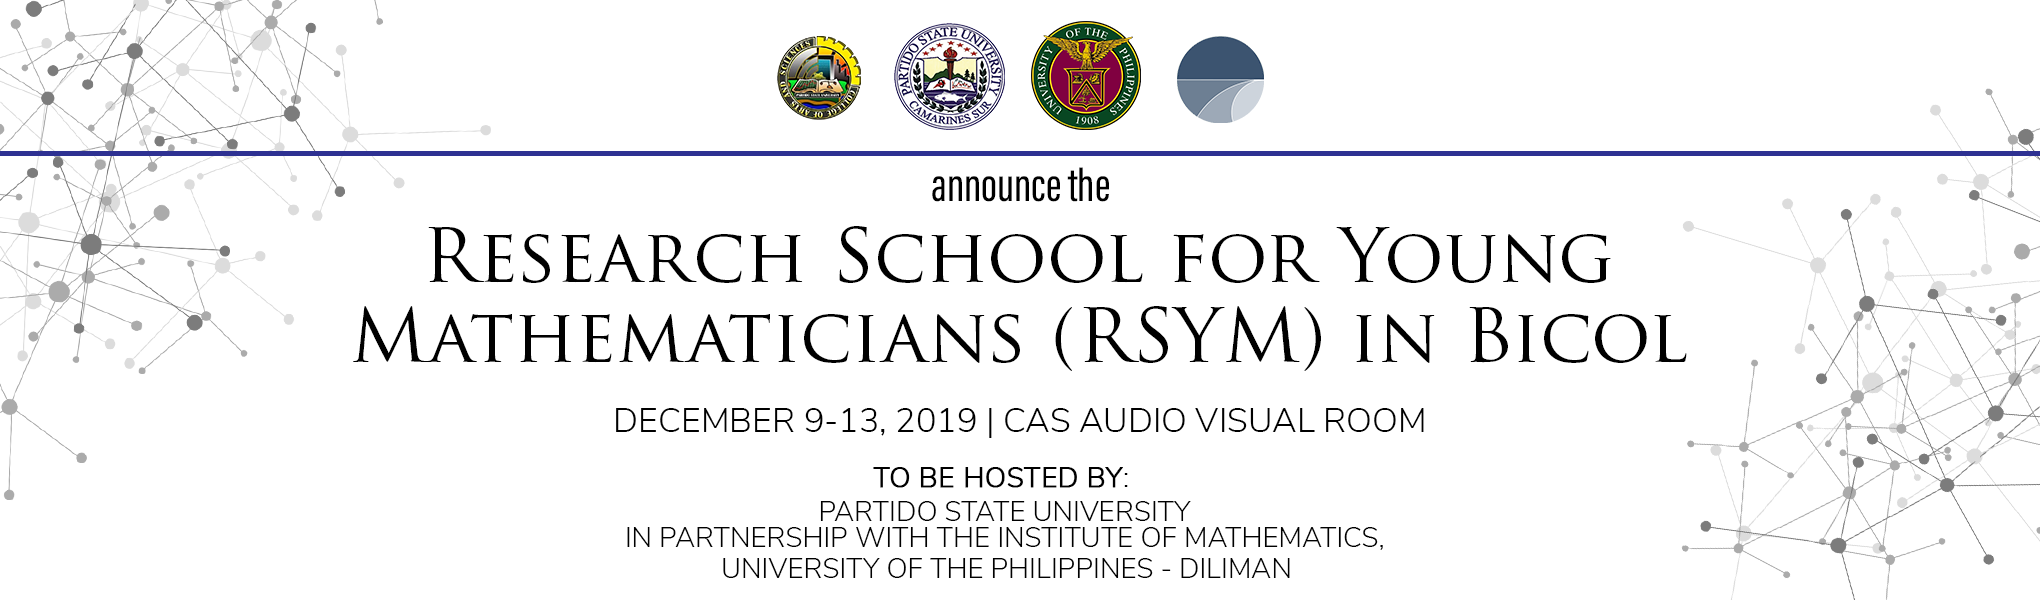 Research School for Young Mathematicians (RYM) in Bicol